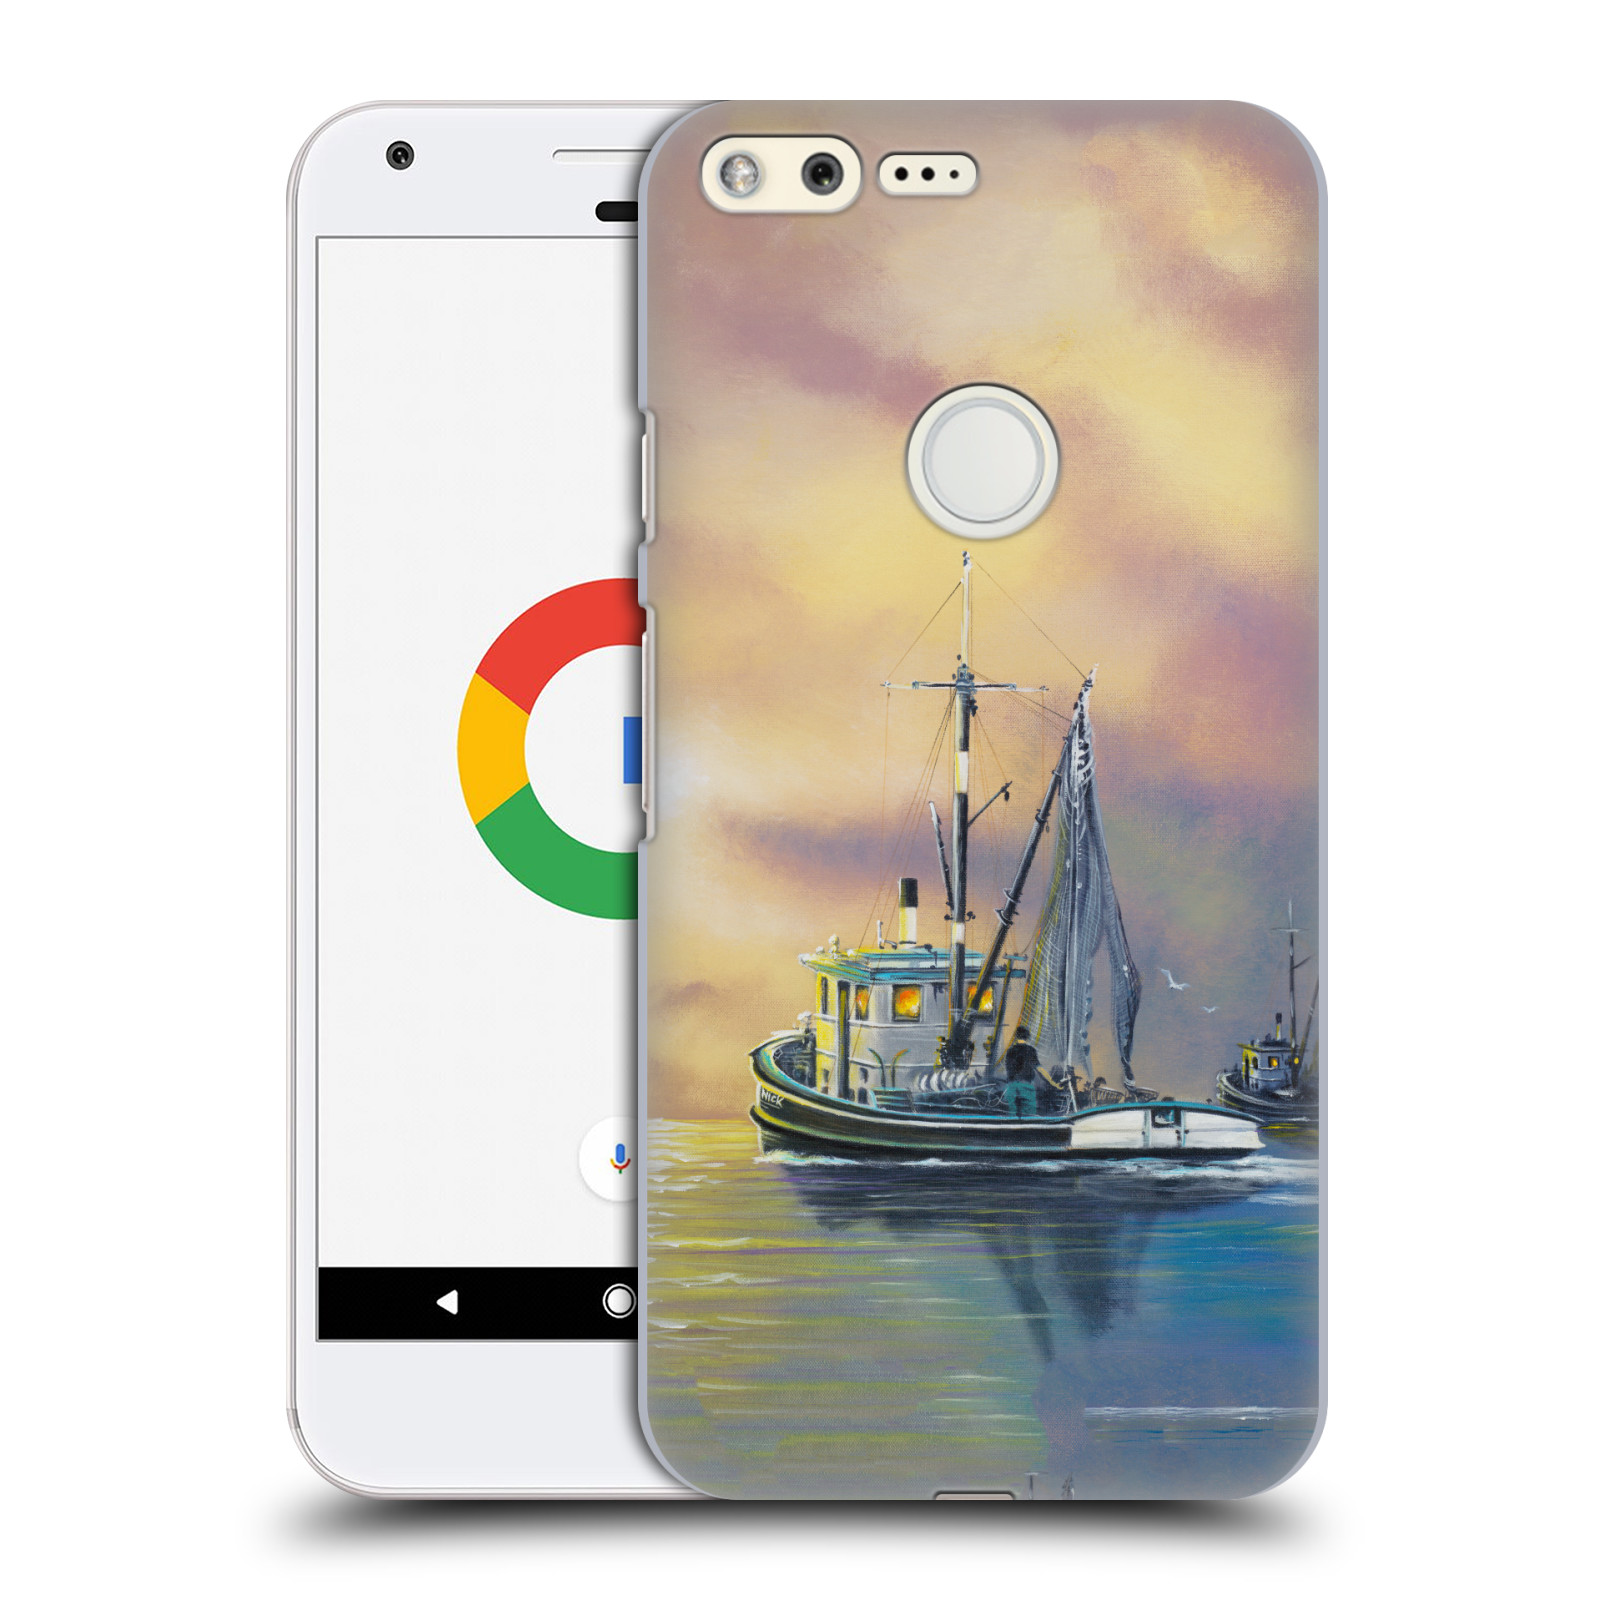 OFFICIAL-GENO-PEOPLES-ART-HOLIDAY-HARD-BACK-CASE-FOR-GOOGLE-PHONES